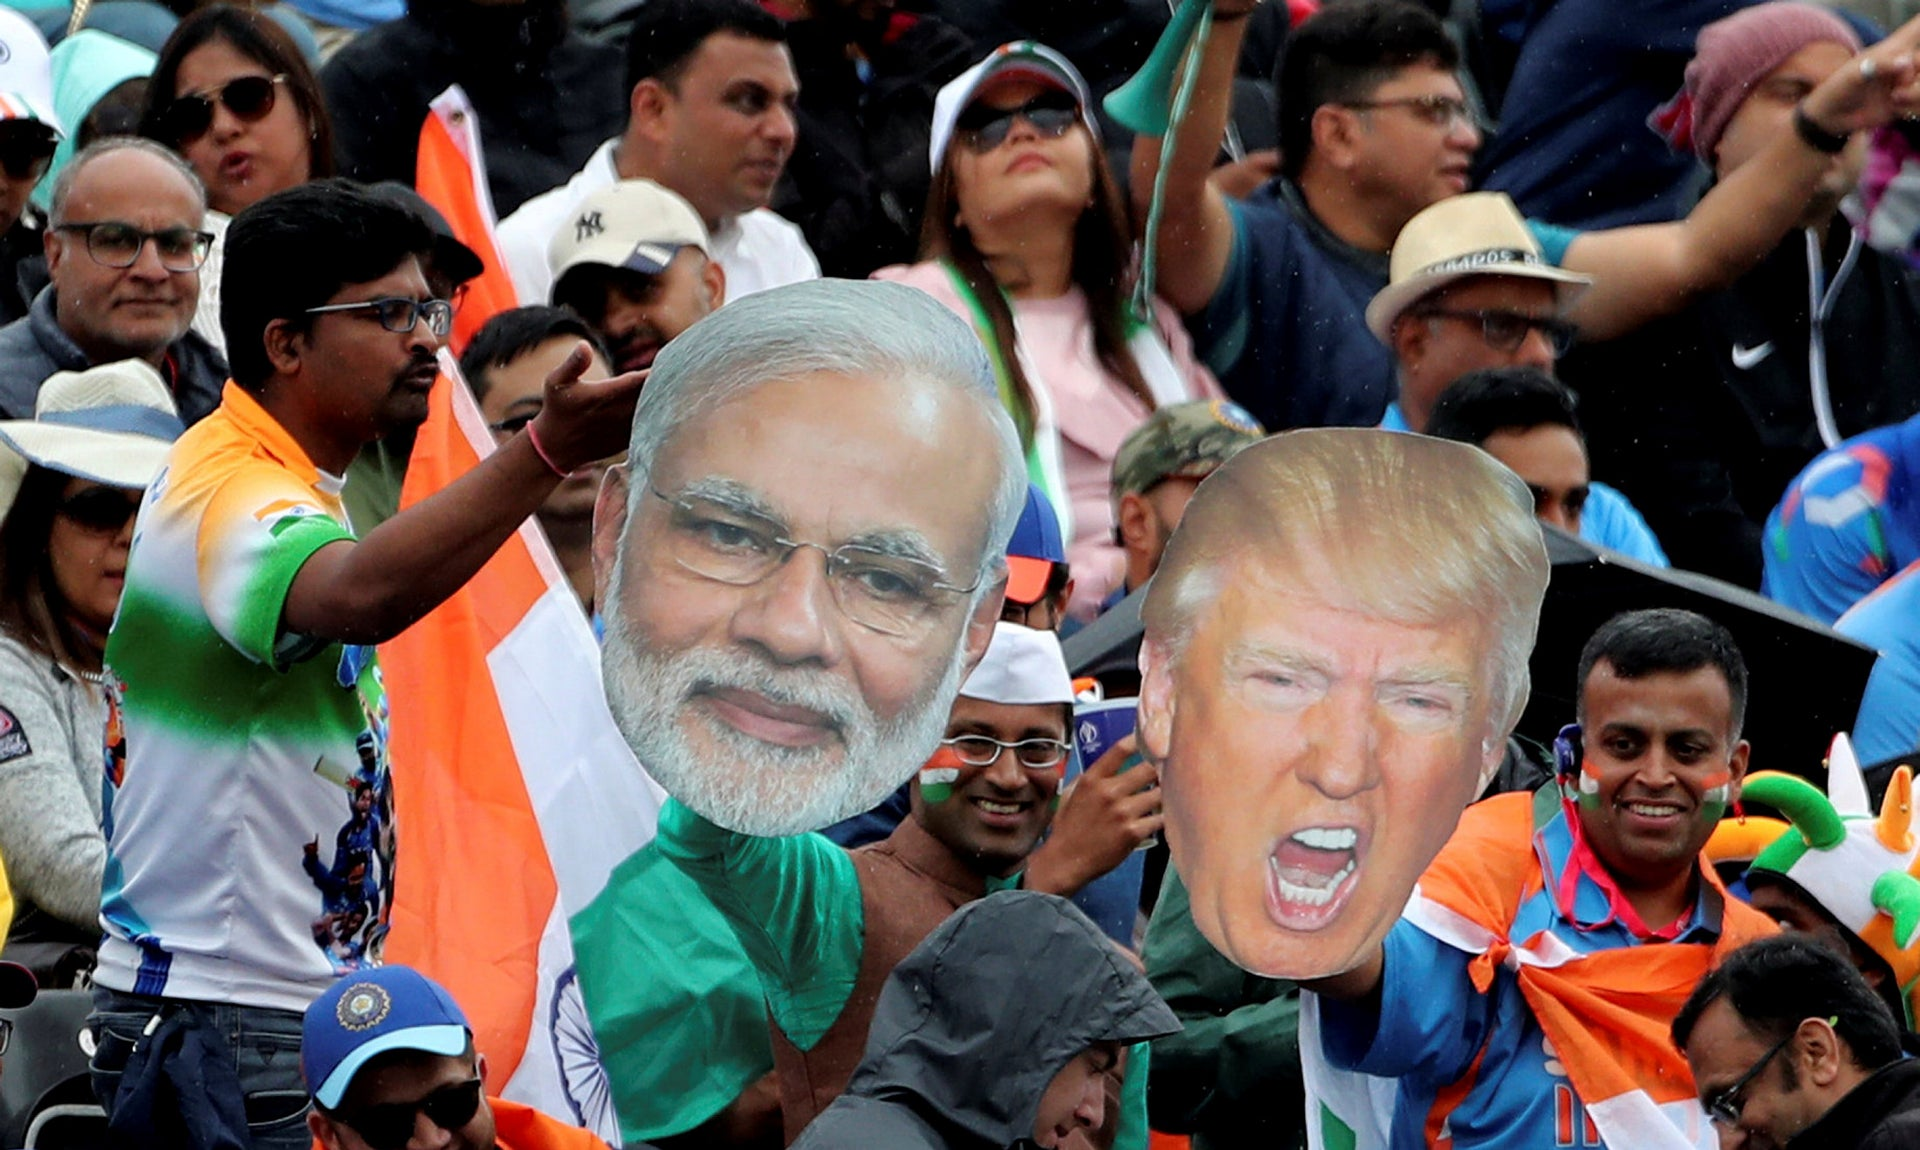 Indian supporters display portraits of U.S. President Donald Trump and Indian Prime Minister Narendra Modi.